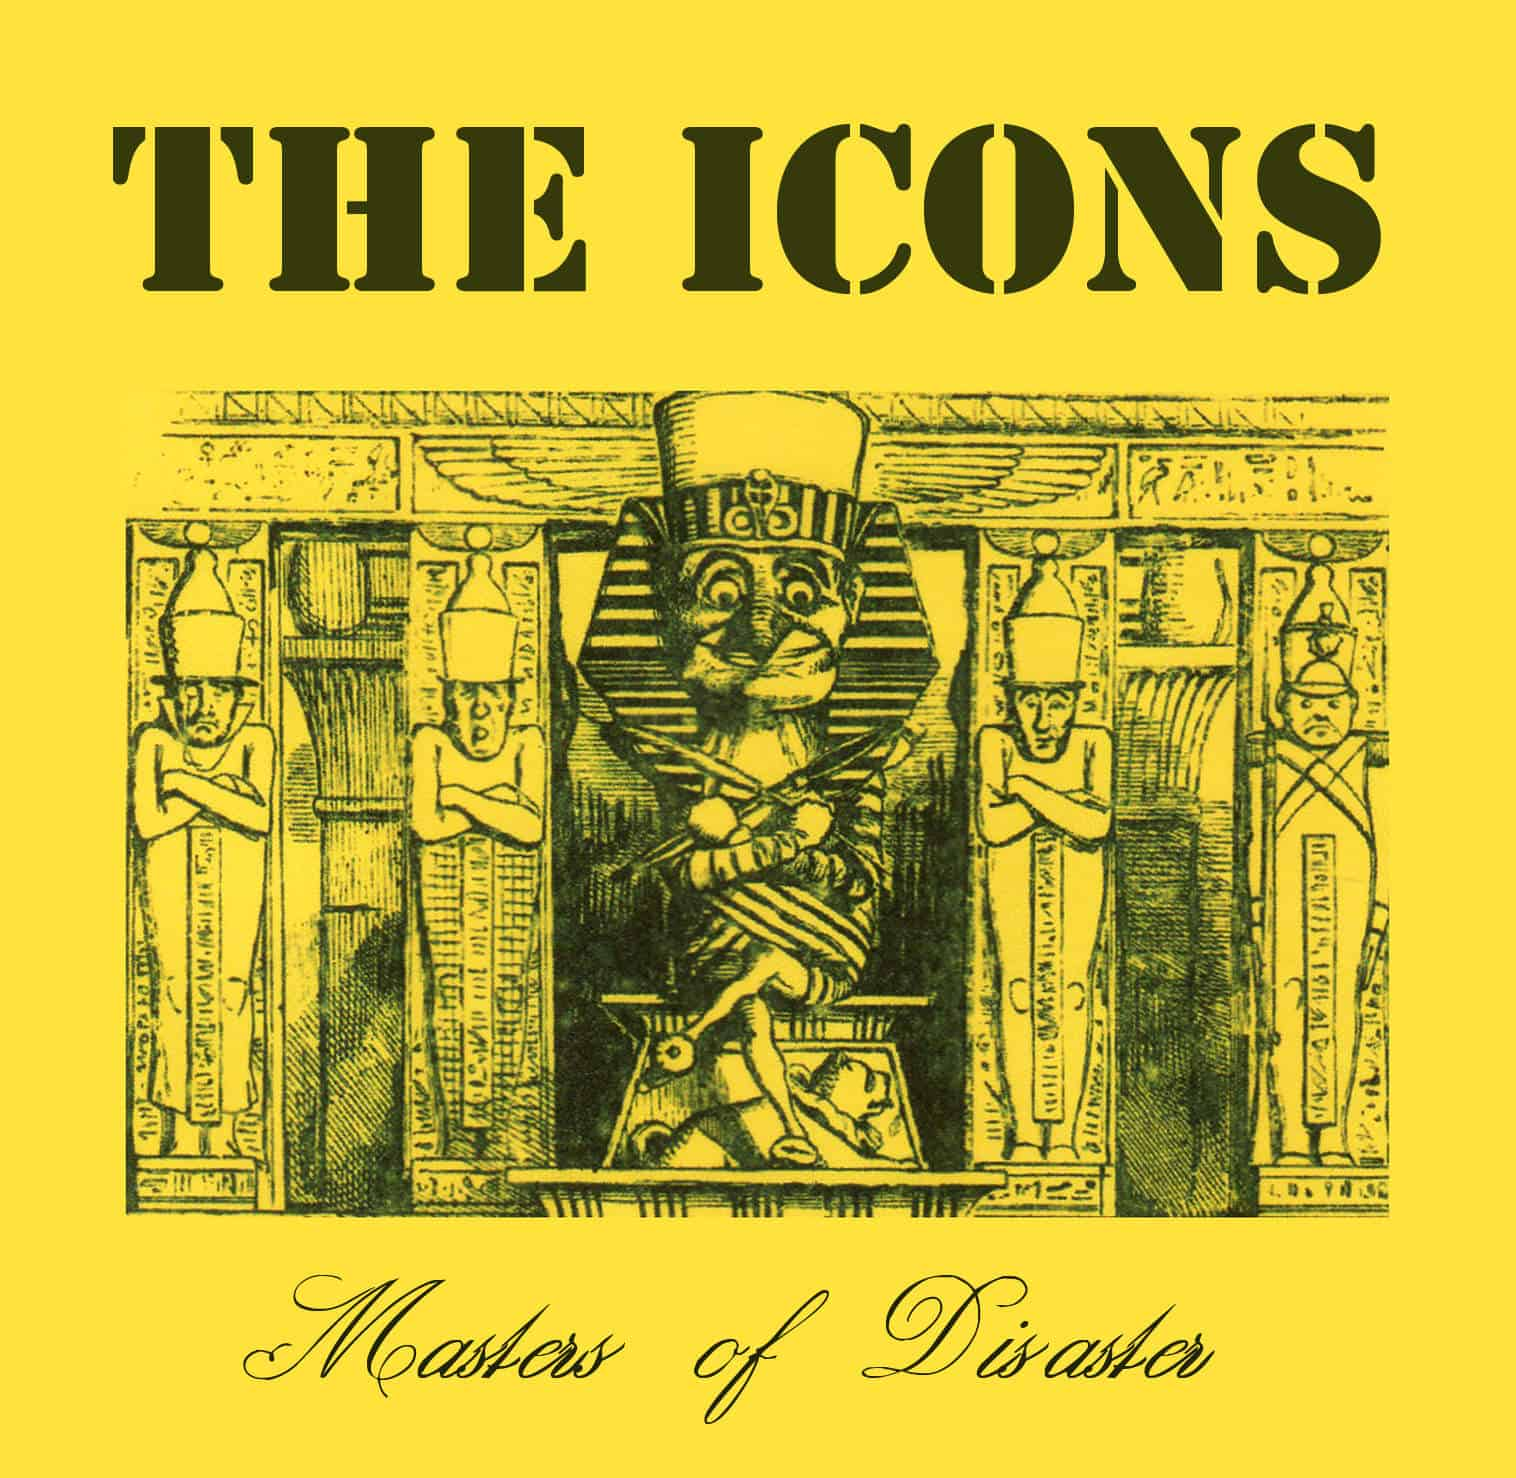 Super review of The Icons' Masters of Disaster